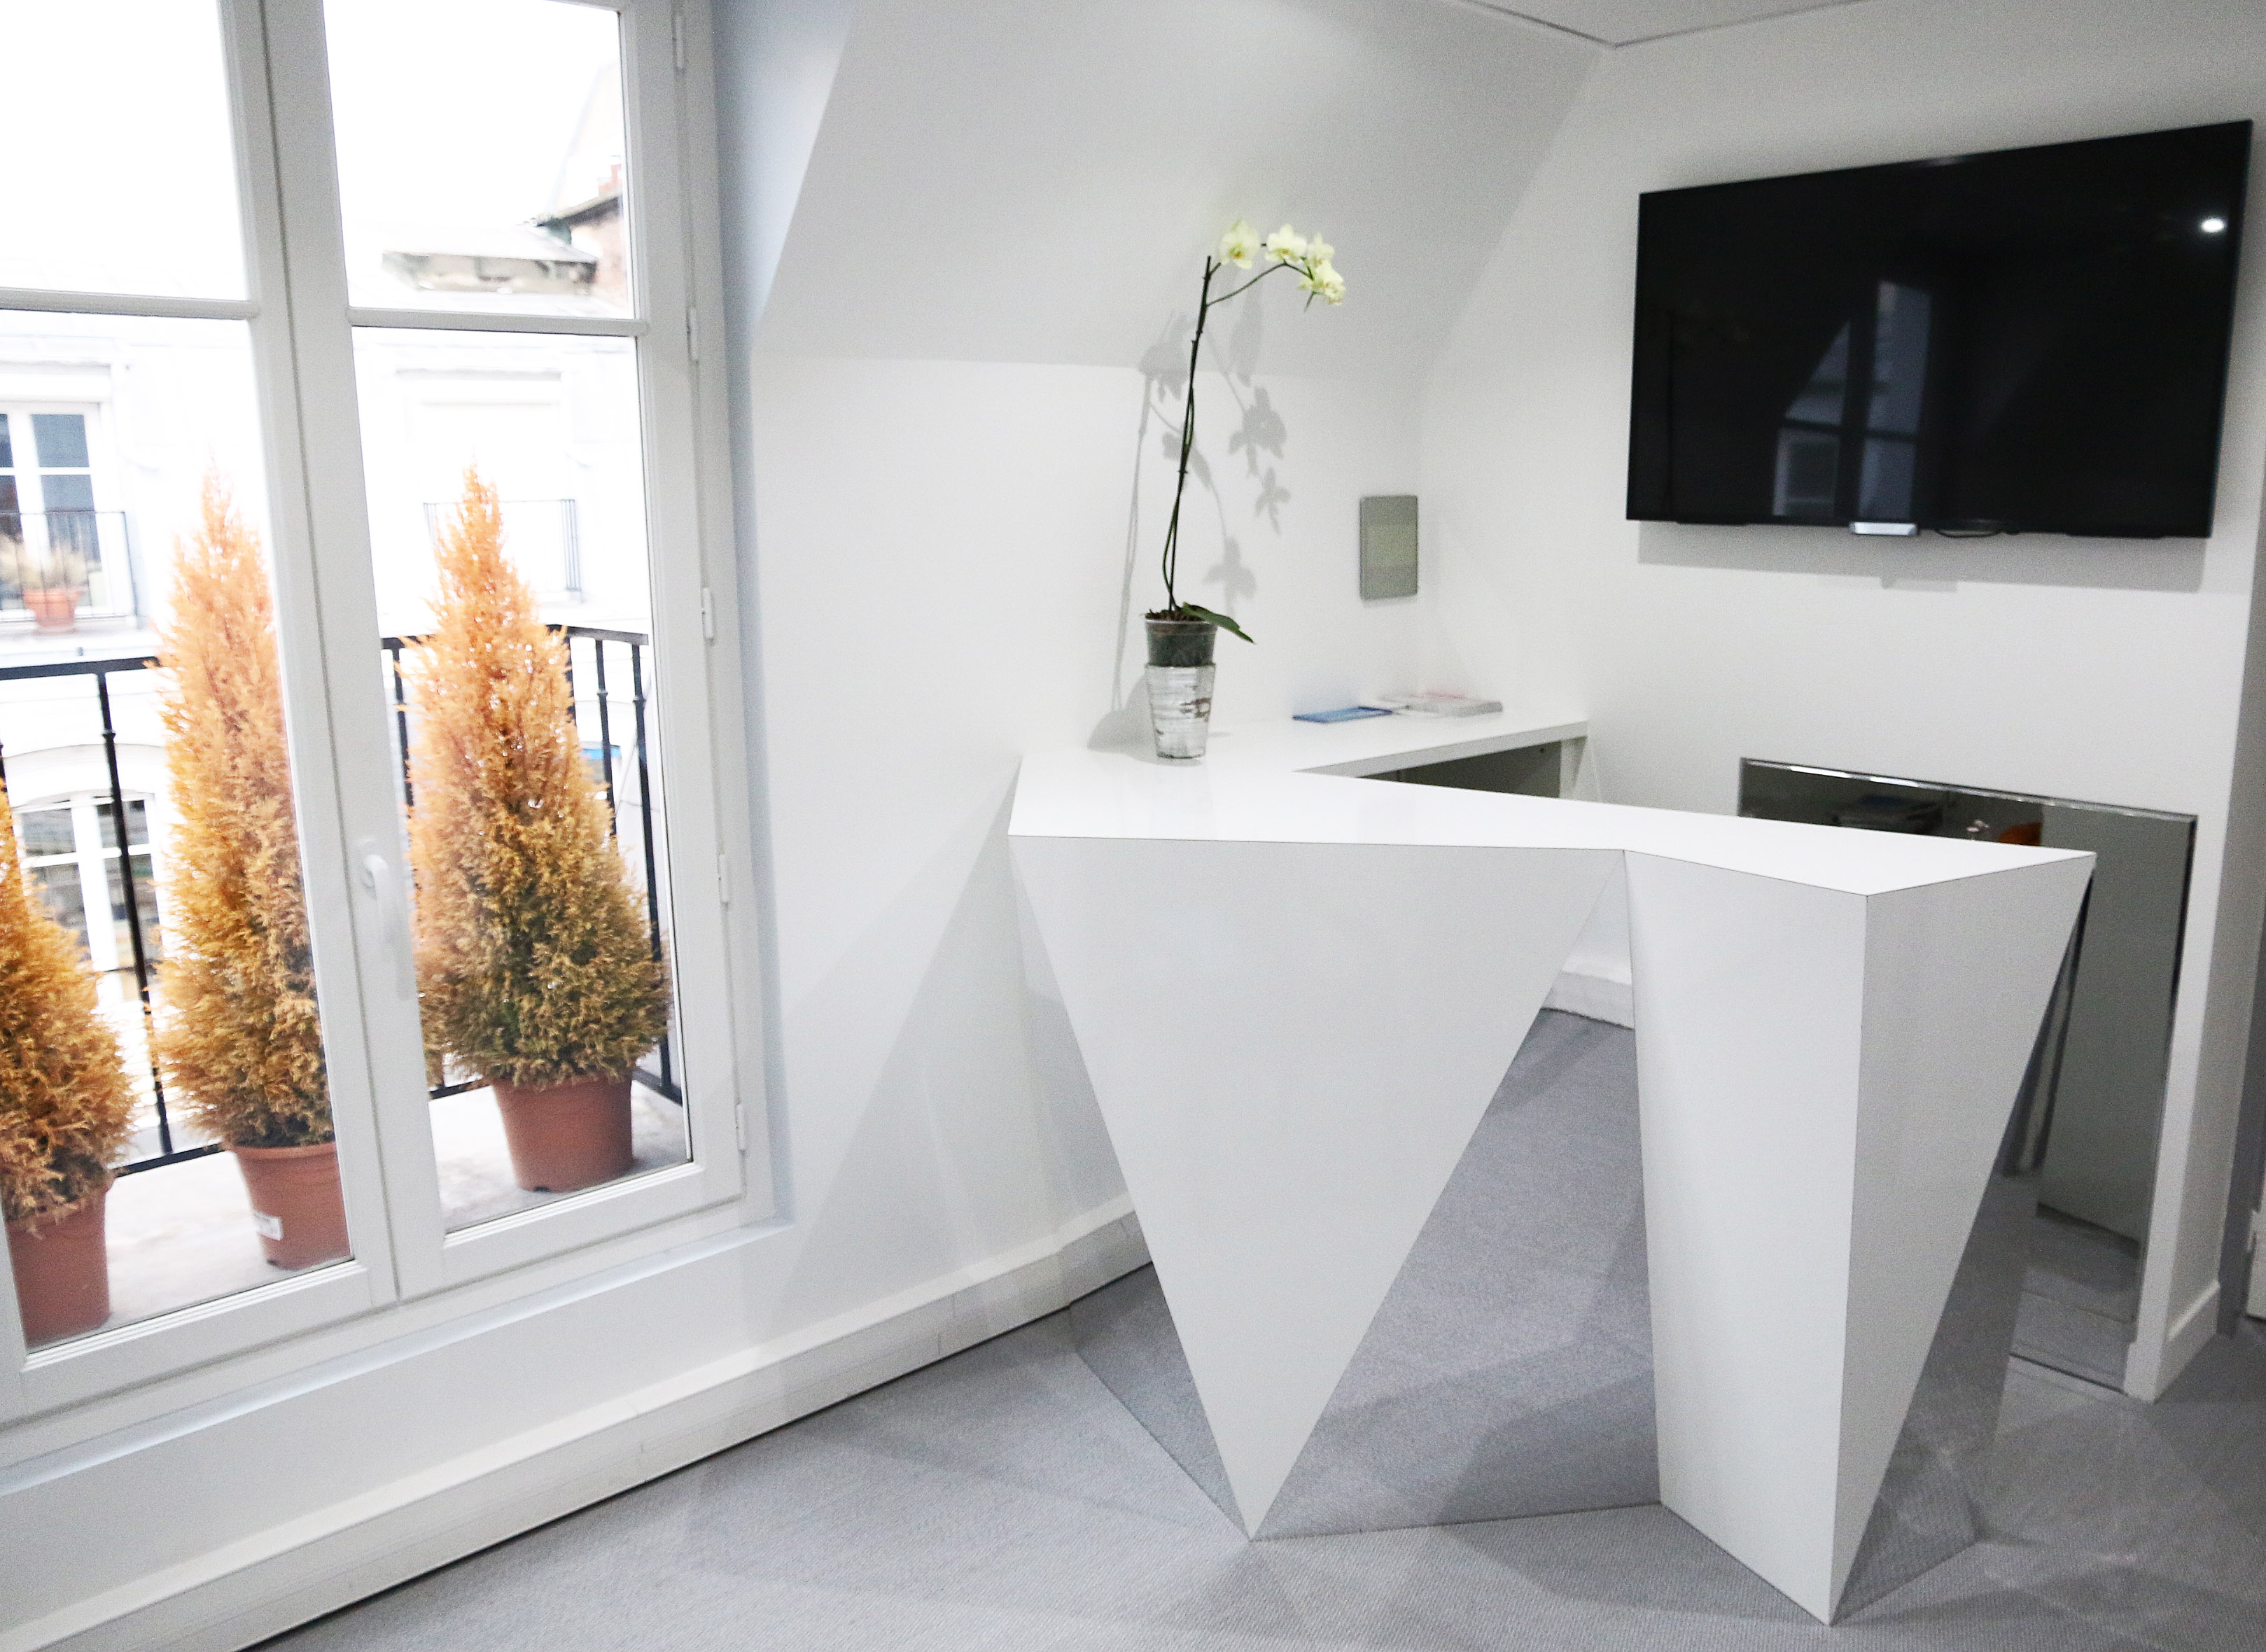 Showroom de diamant - Oxygn concepts